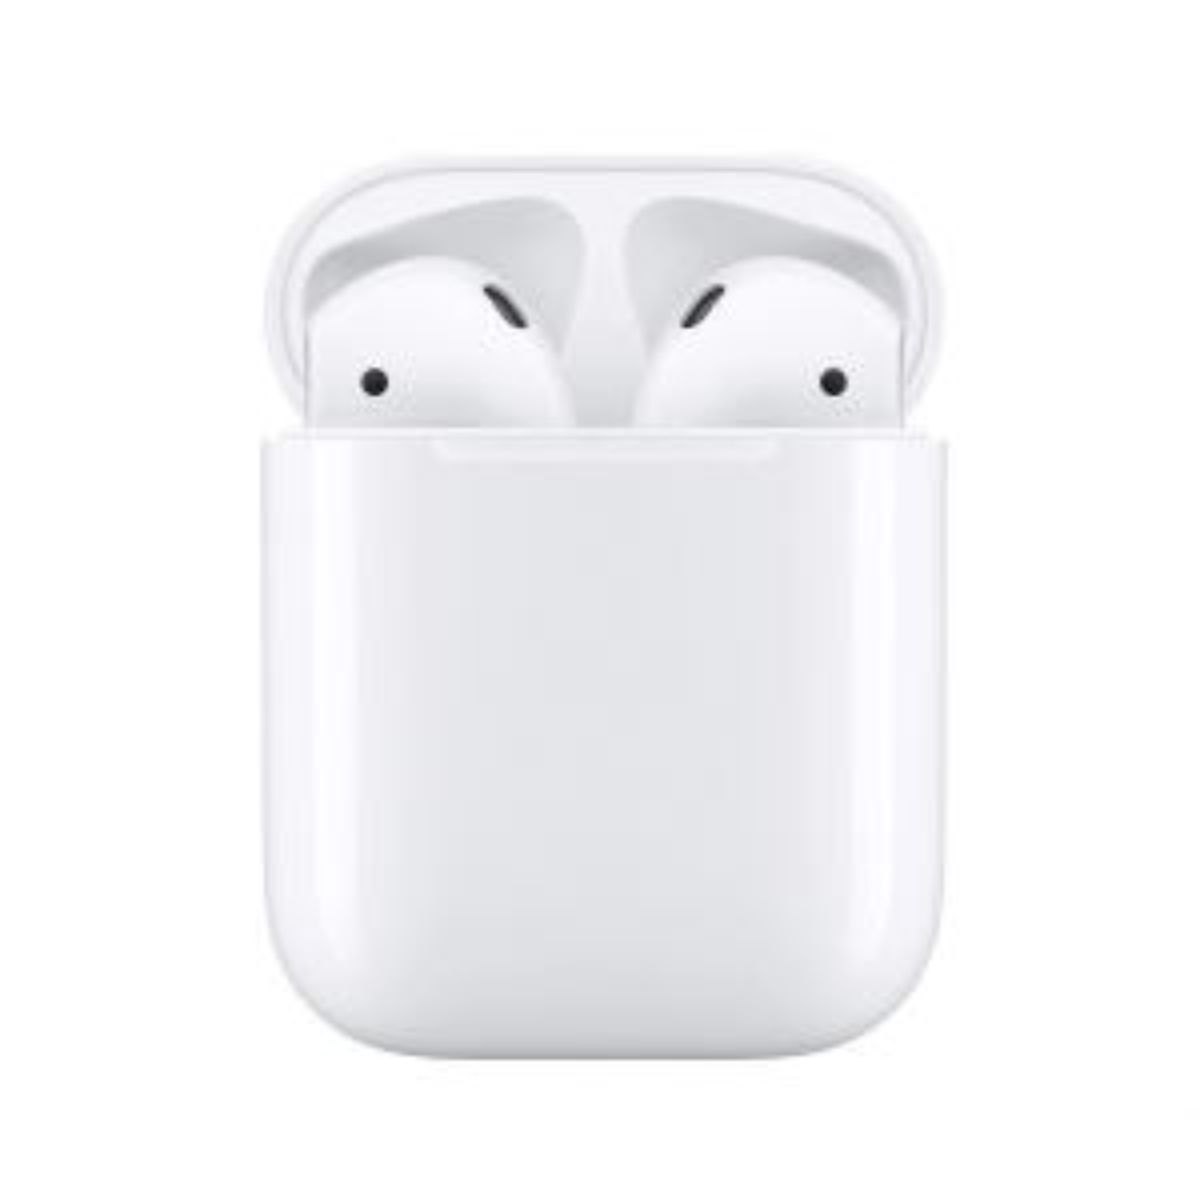 apple airpods 2 3 1 1